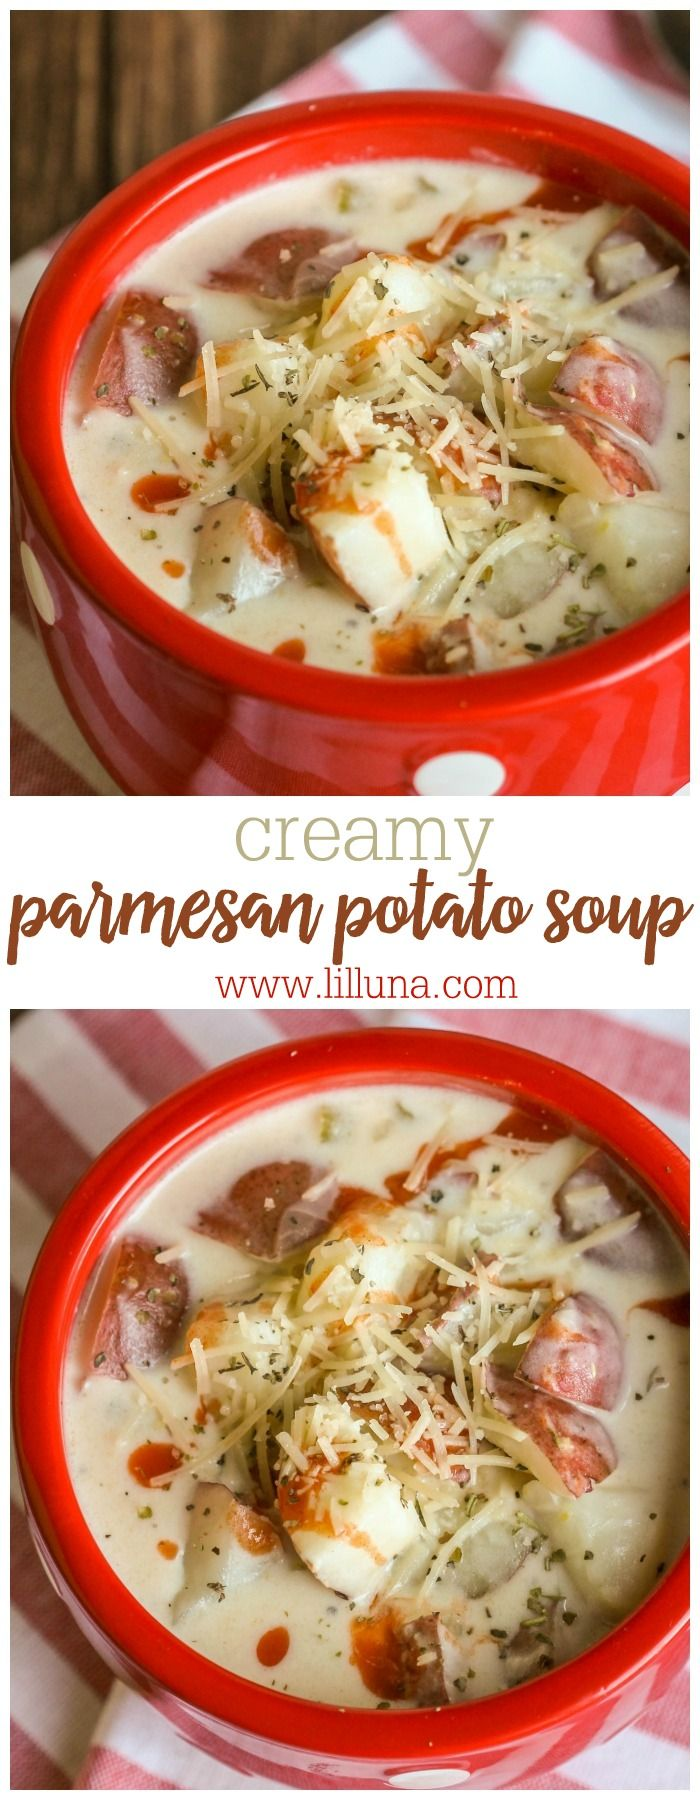 Creamy Parmesan Potato Soup - the perfect fall recipe with so much flavor! It's an easy dinner idea to add to the meal rotation.